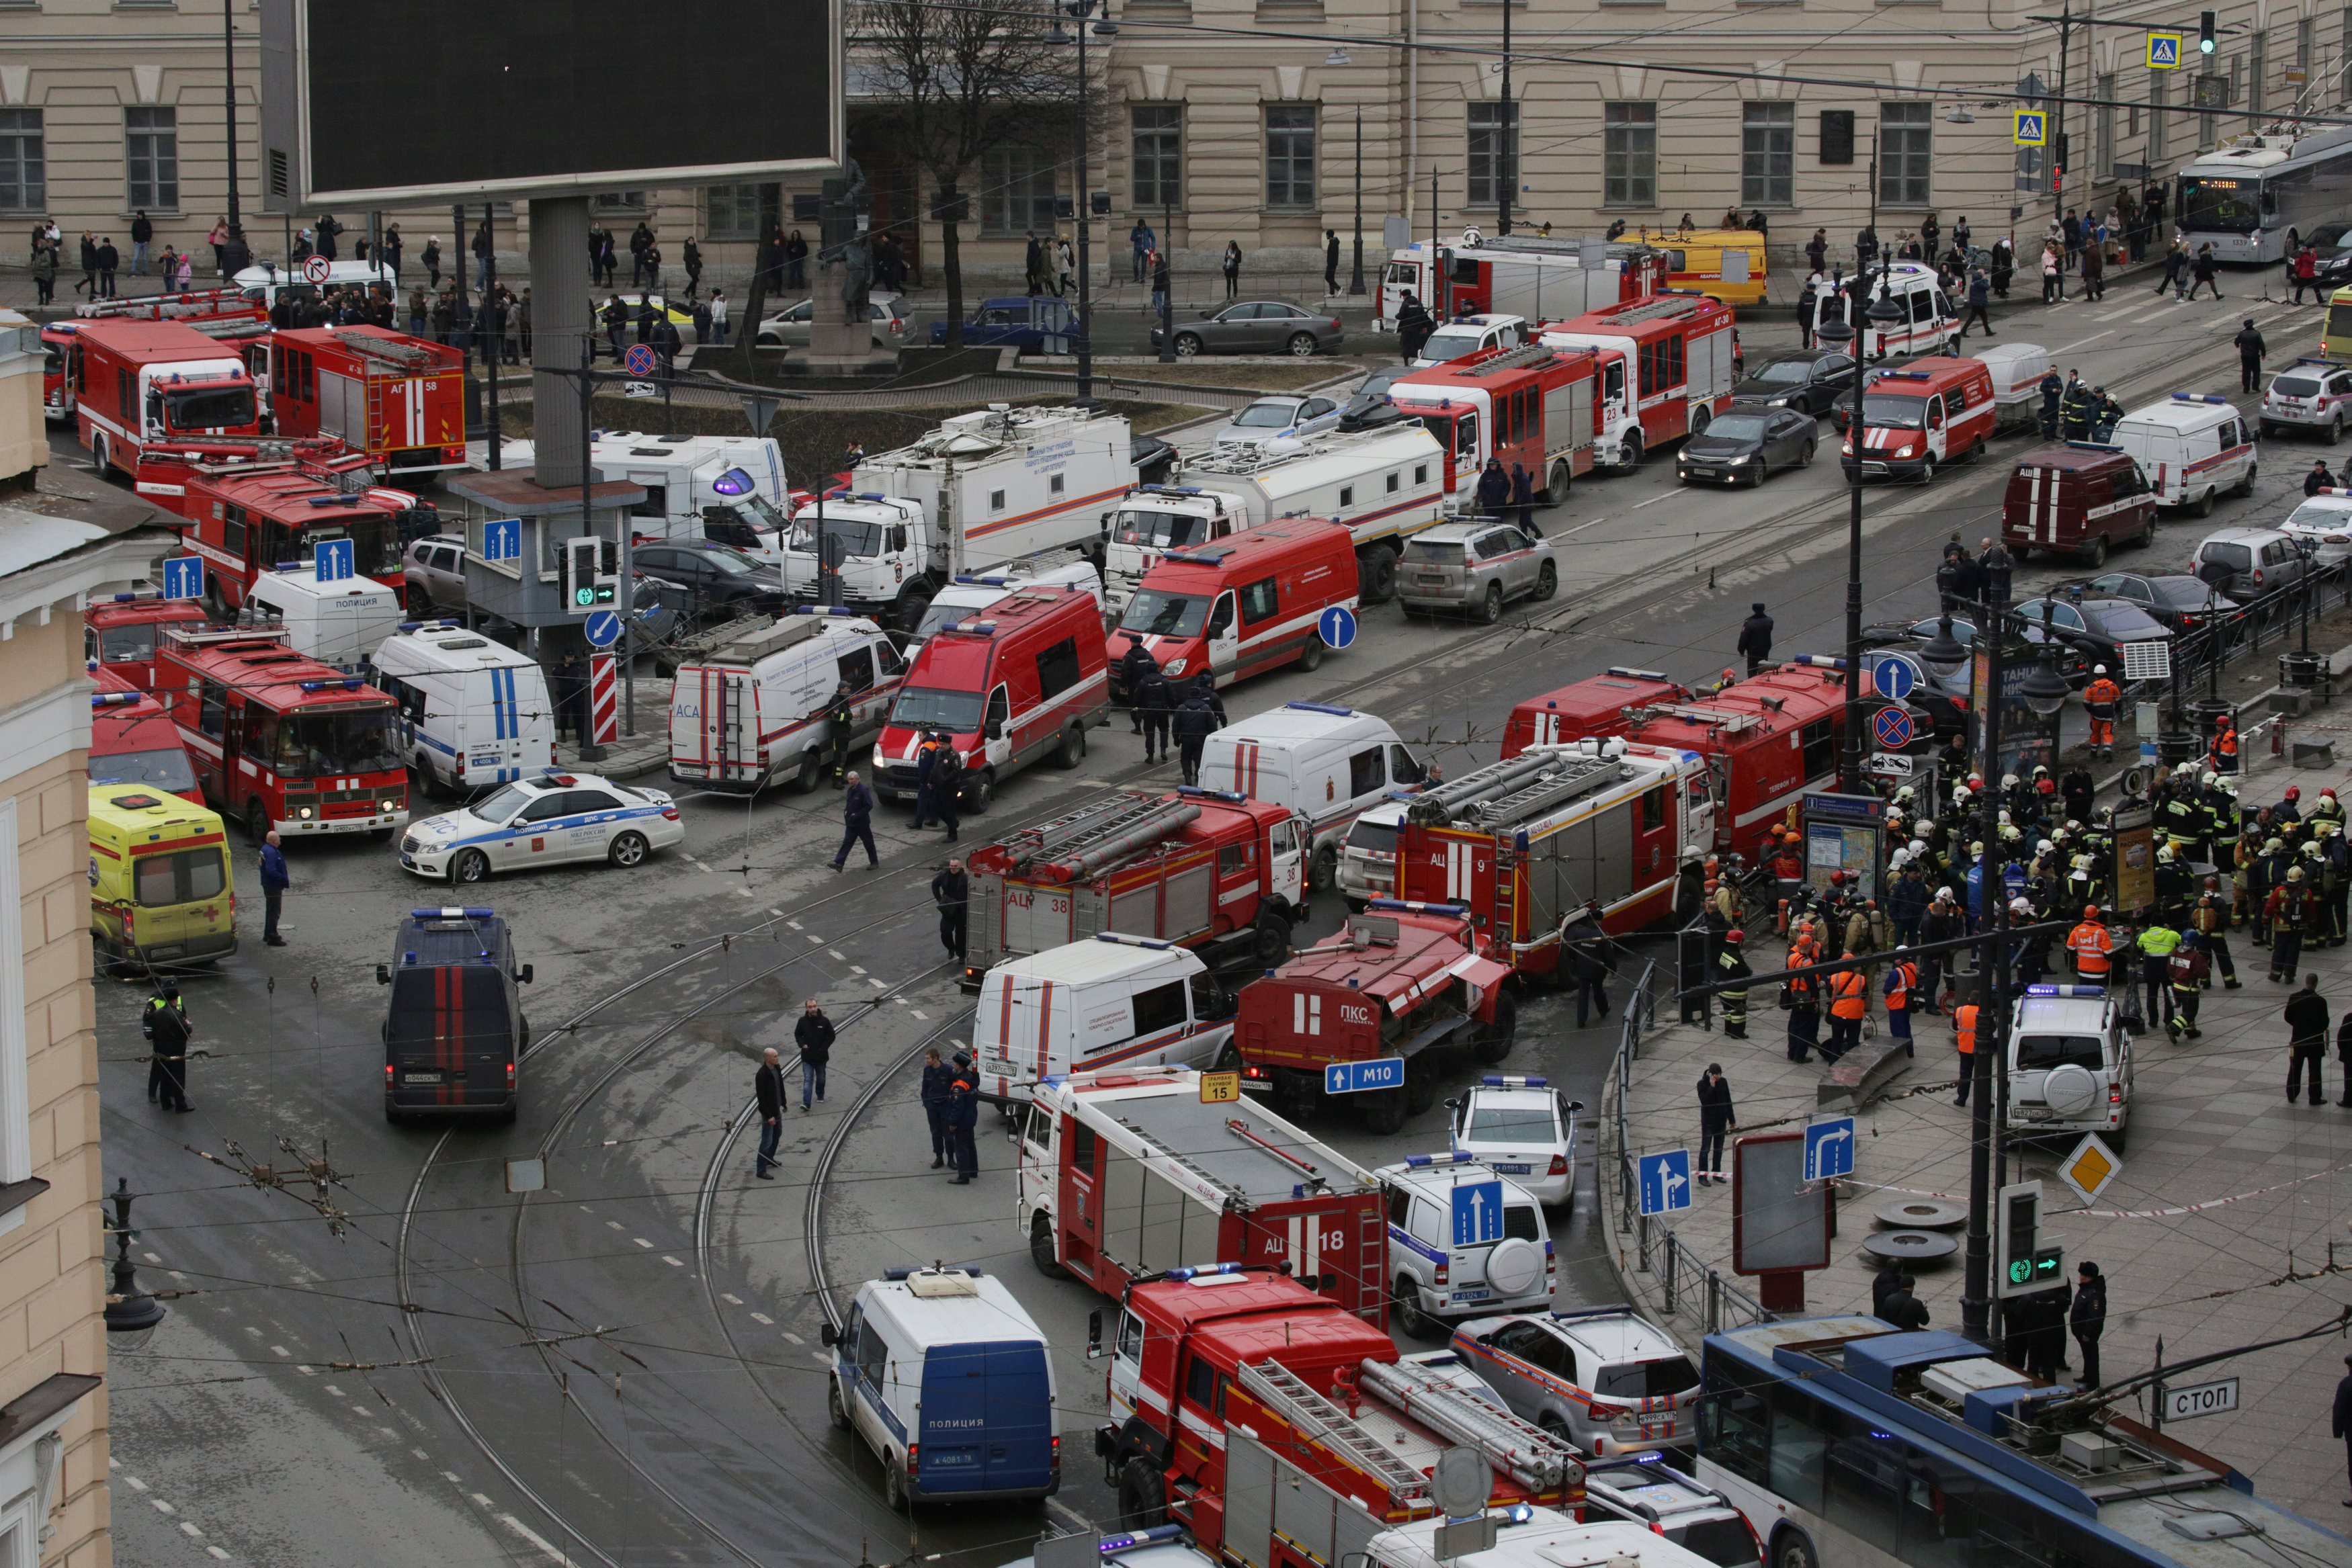 General view of emergency services attending the scene outside Sennaya Ploshchad metro station, following explosions in two train carriages in St. Petersburg, Russia on April 3, 2017. REUTERS/Anton Vaganov